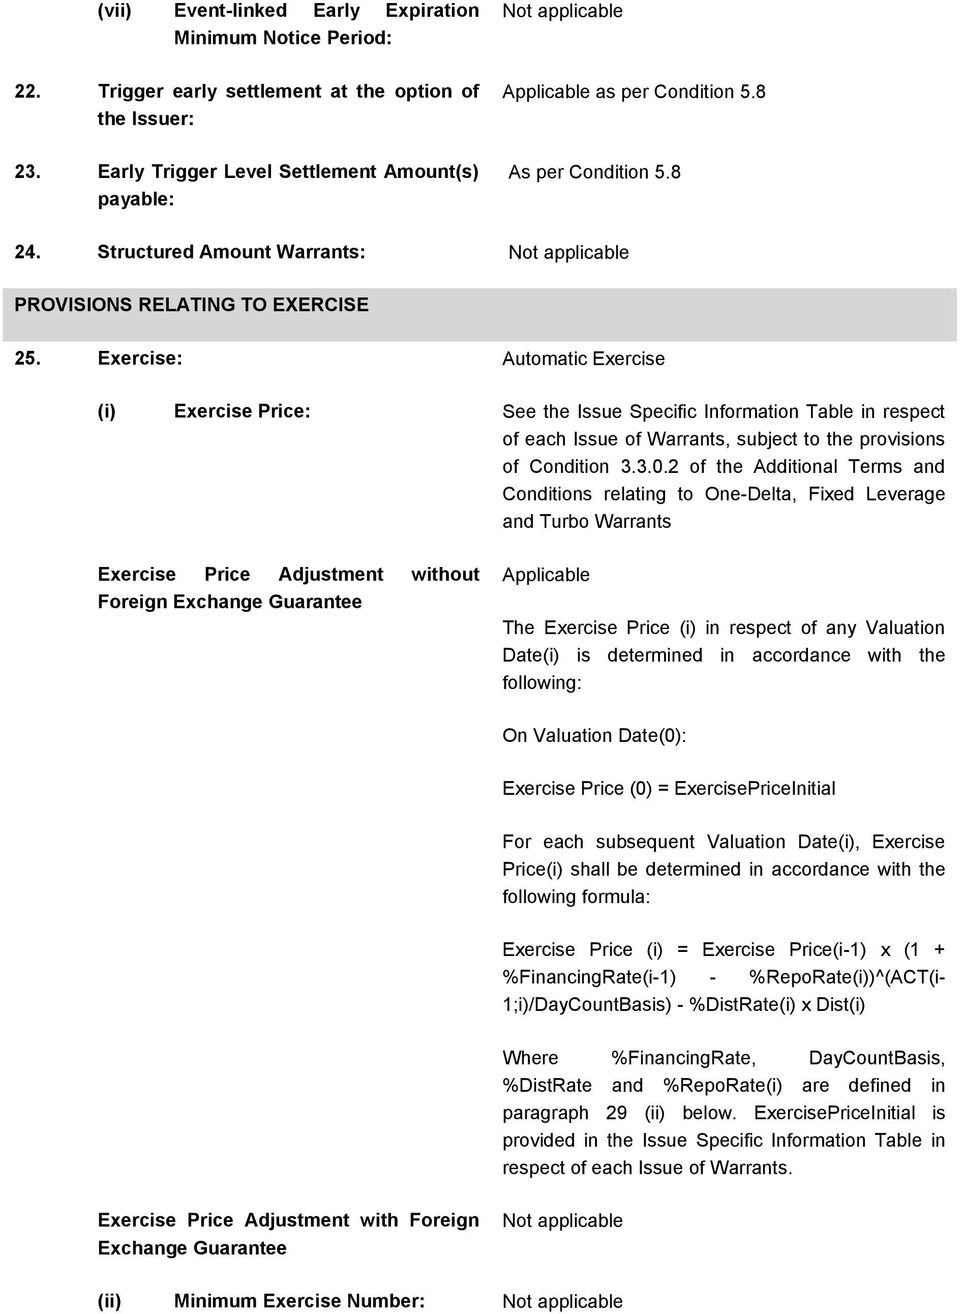 Exercise: Automatic Exercise (i) Exercise Price: See the Issue Specific Information Table in respect of each Issue of Warrants, subject to the provisions of Condition 3.3.0.